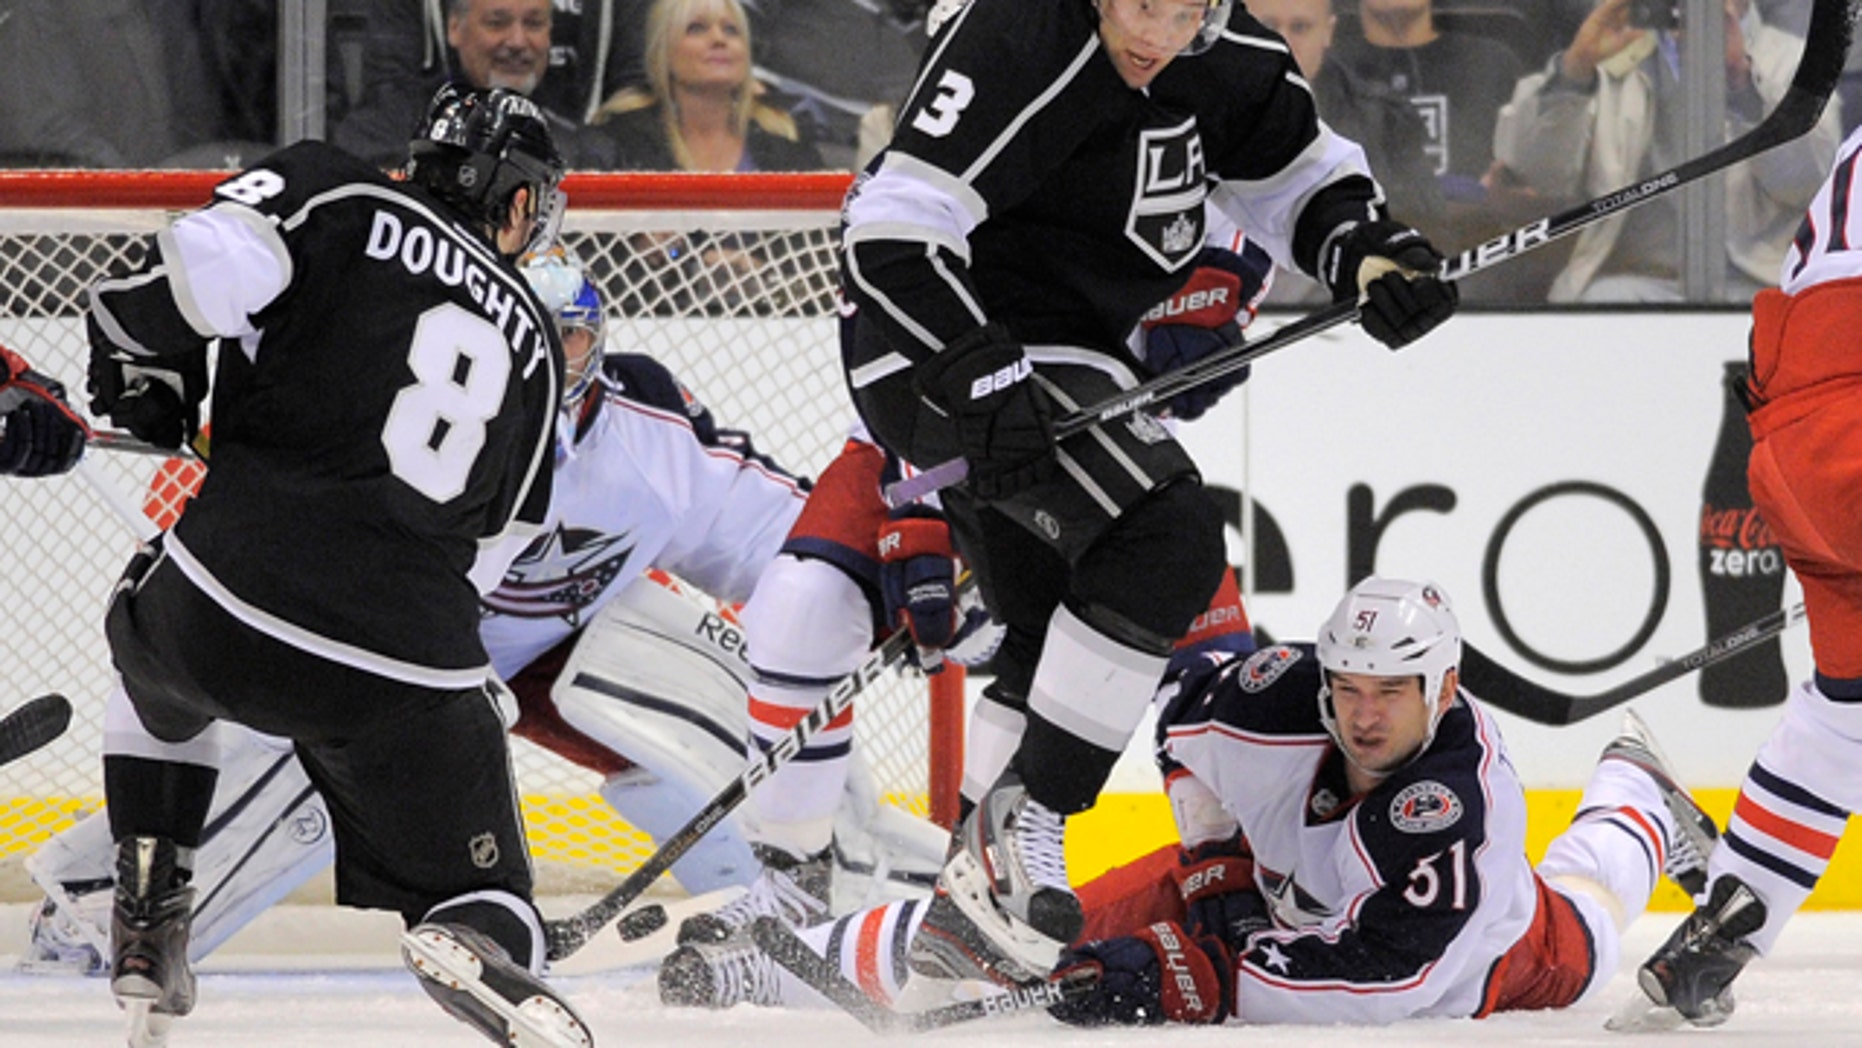 Feb. 1, 2012: Los Angeles Kings defenseman Drew Doughty, left, shoots and scores  to win the game on Columbus Blue Jackets goalie Curtis Sanford, second from left, as Los Angeles Kings defenseman Jack Johnson, second from right, jumps out of the way and Columbus Blue Jackets defenseman Fedor Tyutin of Russia falls during the third period of their NHL hockey game in Los Angeles. The Kings won 3-2.